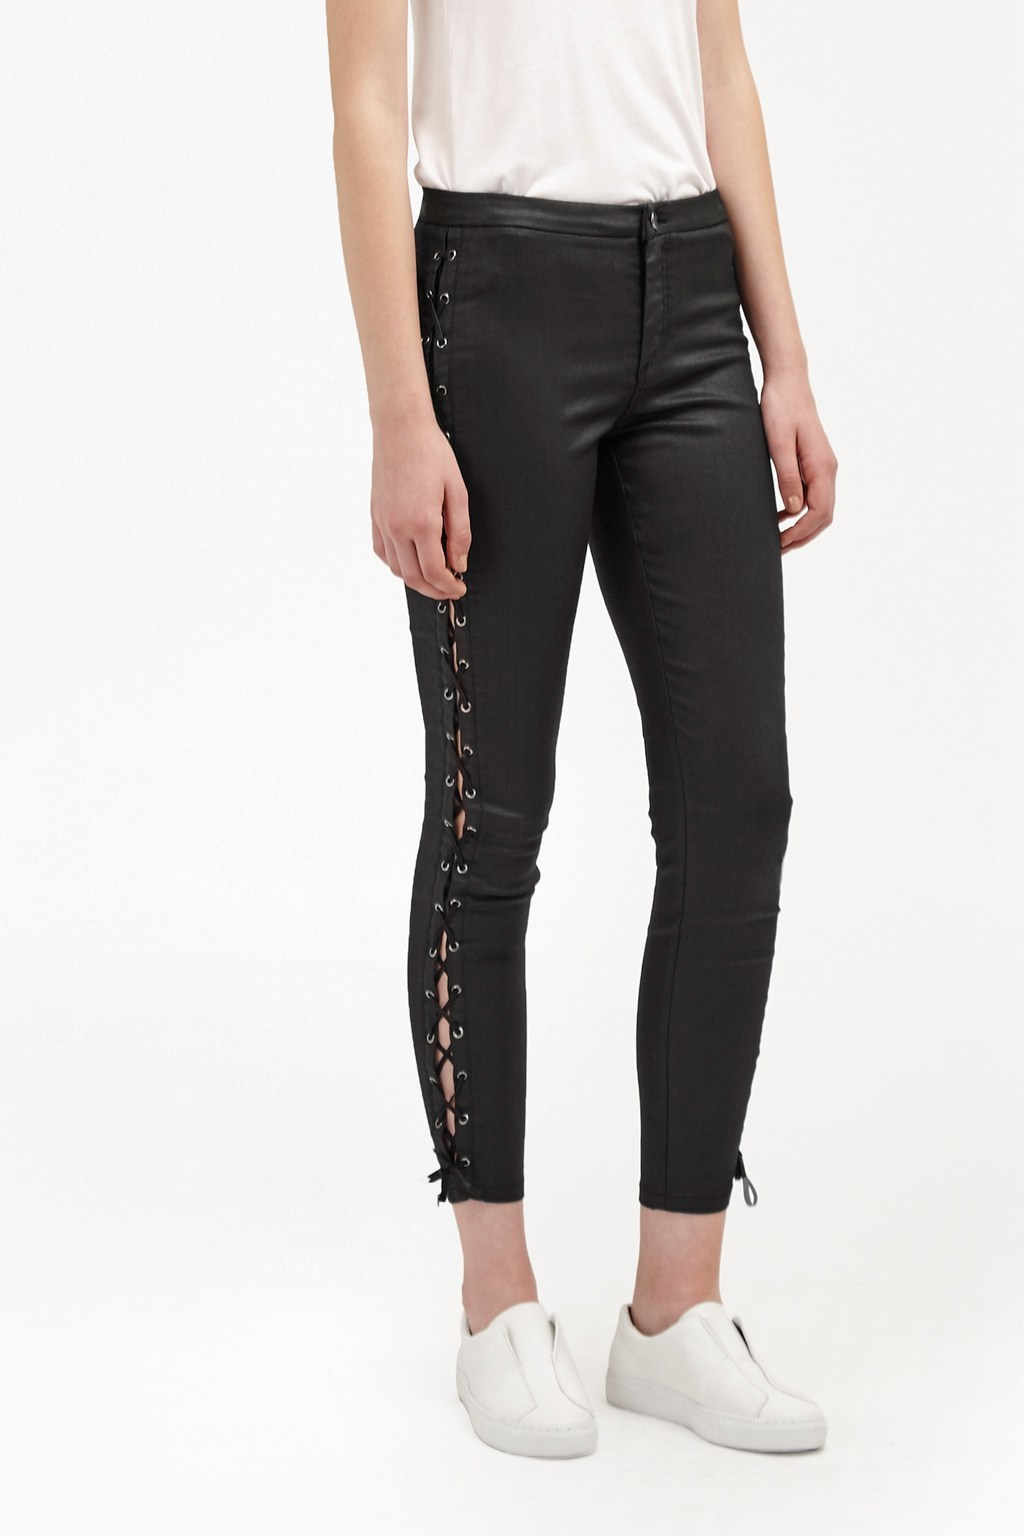 Resin Biker Lace Up Skinny Jeans Black - style: skinny leg; pattern: plain; waist: high rise; predominant colour: black; occasions: casual, evening, creative work; length: ankle length; fibres: cotton - stretch; texture group: leather; pattern type: fabric; season: a/w 2016; wardrobe: highlight